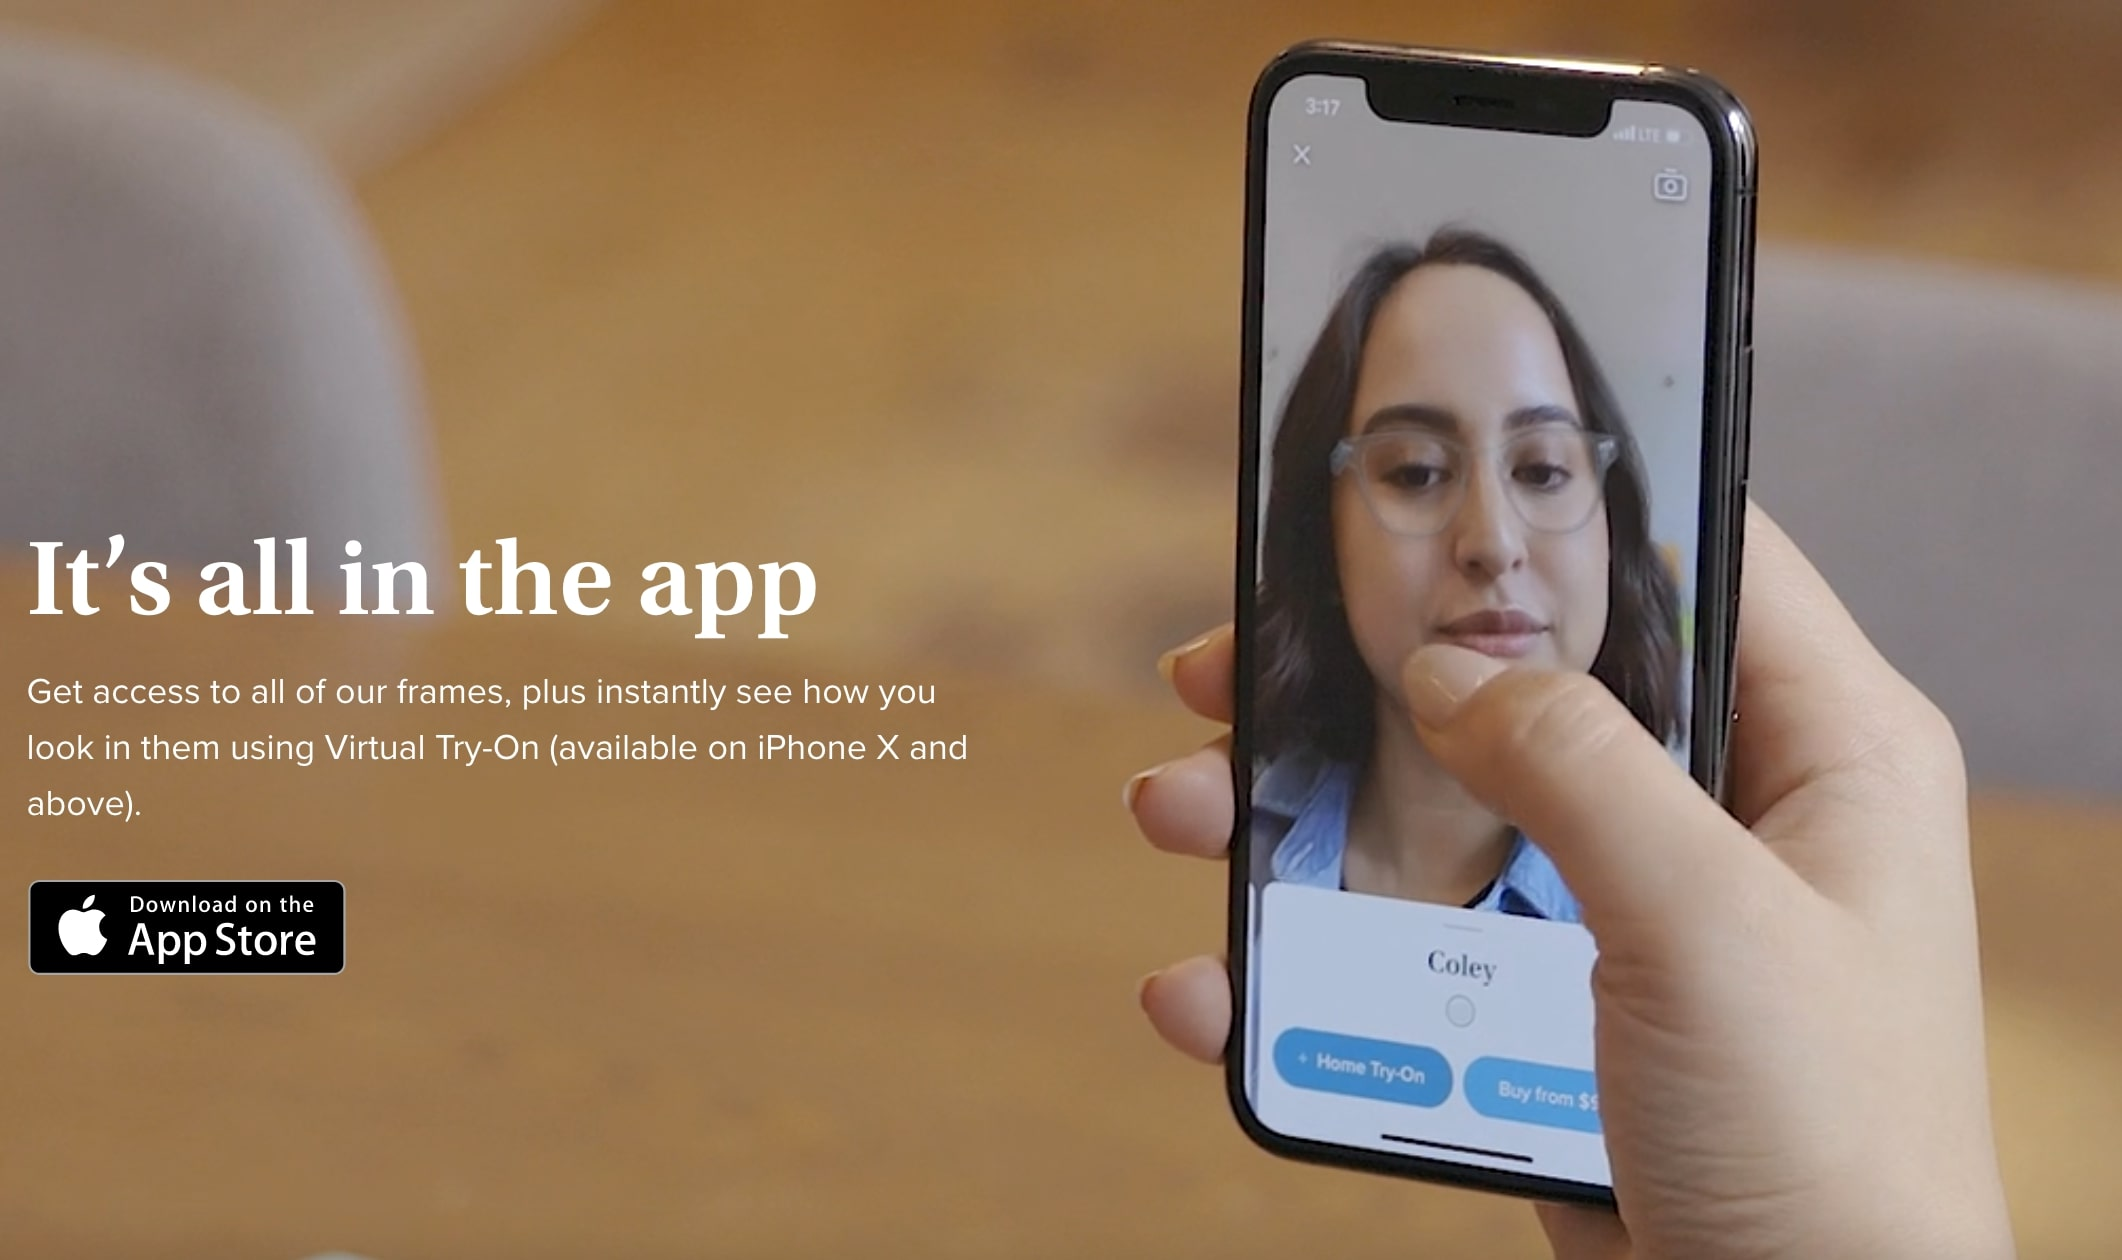 Warby Parker promotion about their virtual try-on in their app